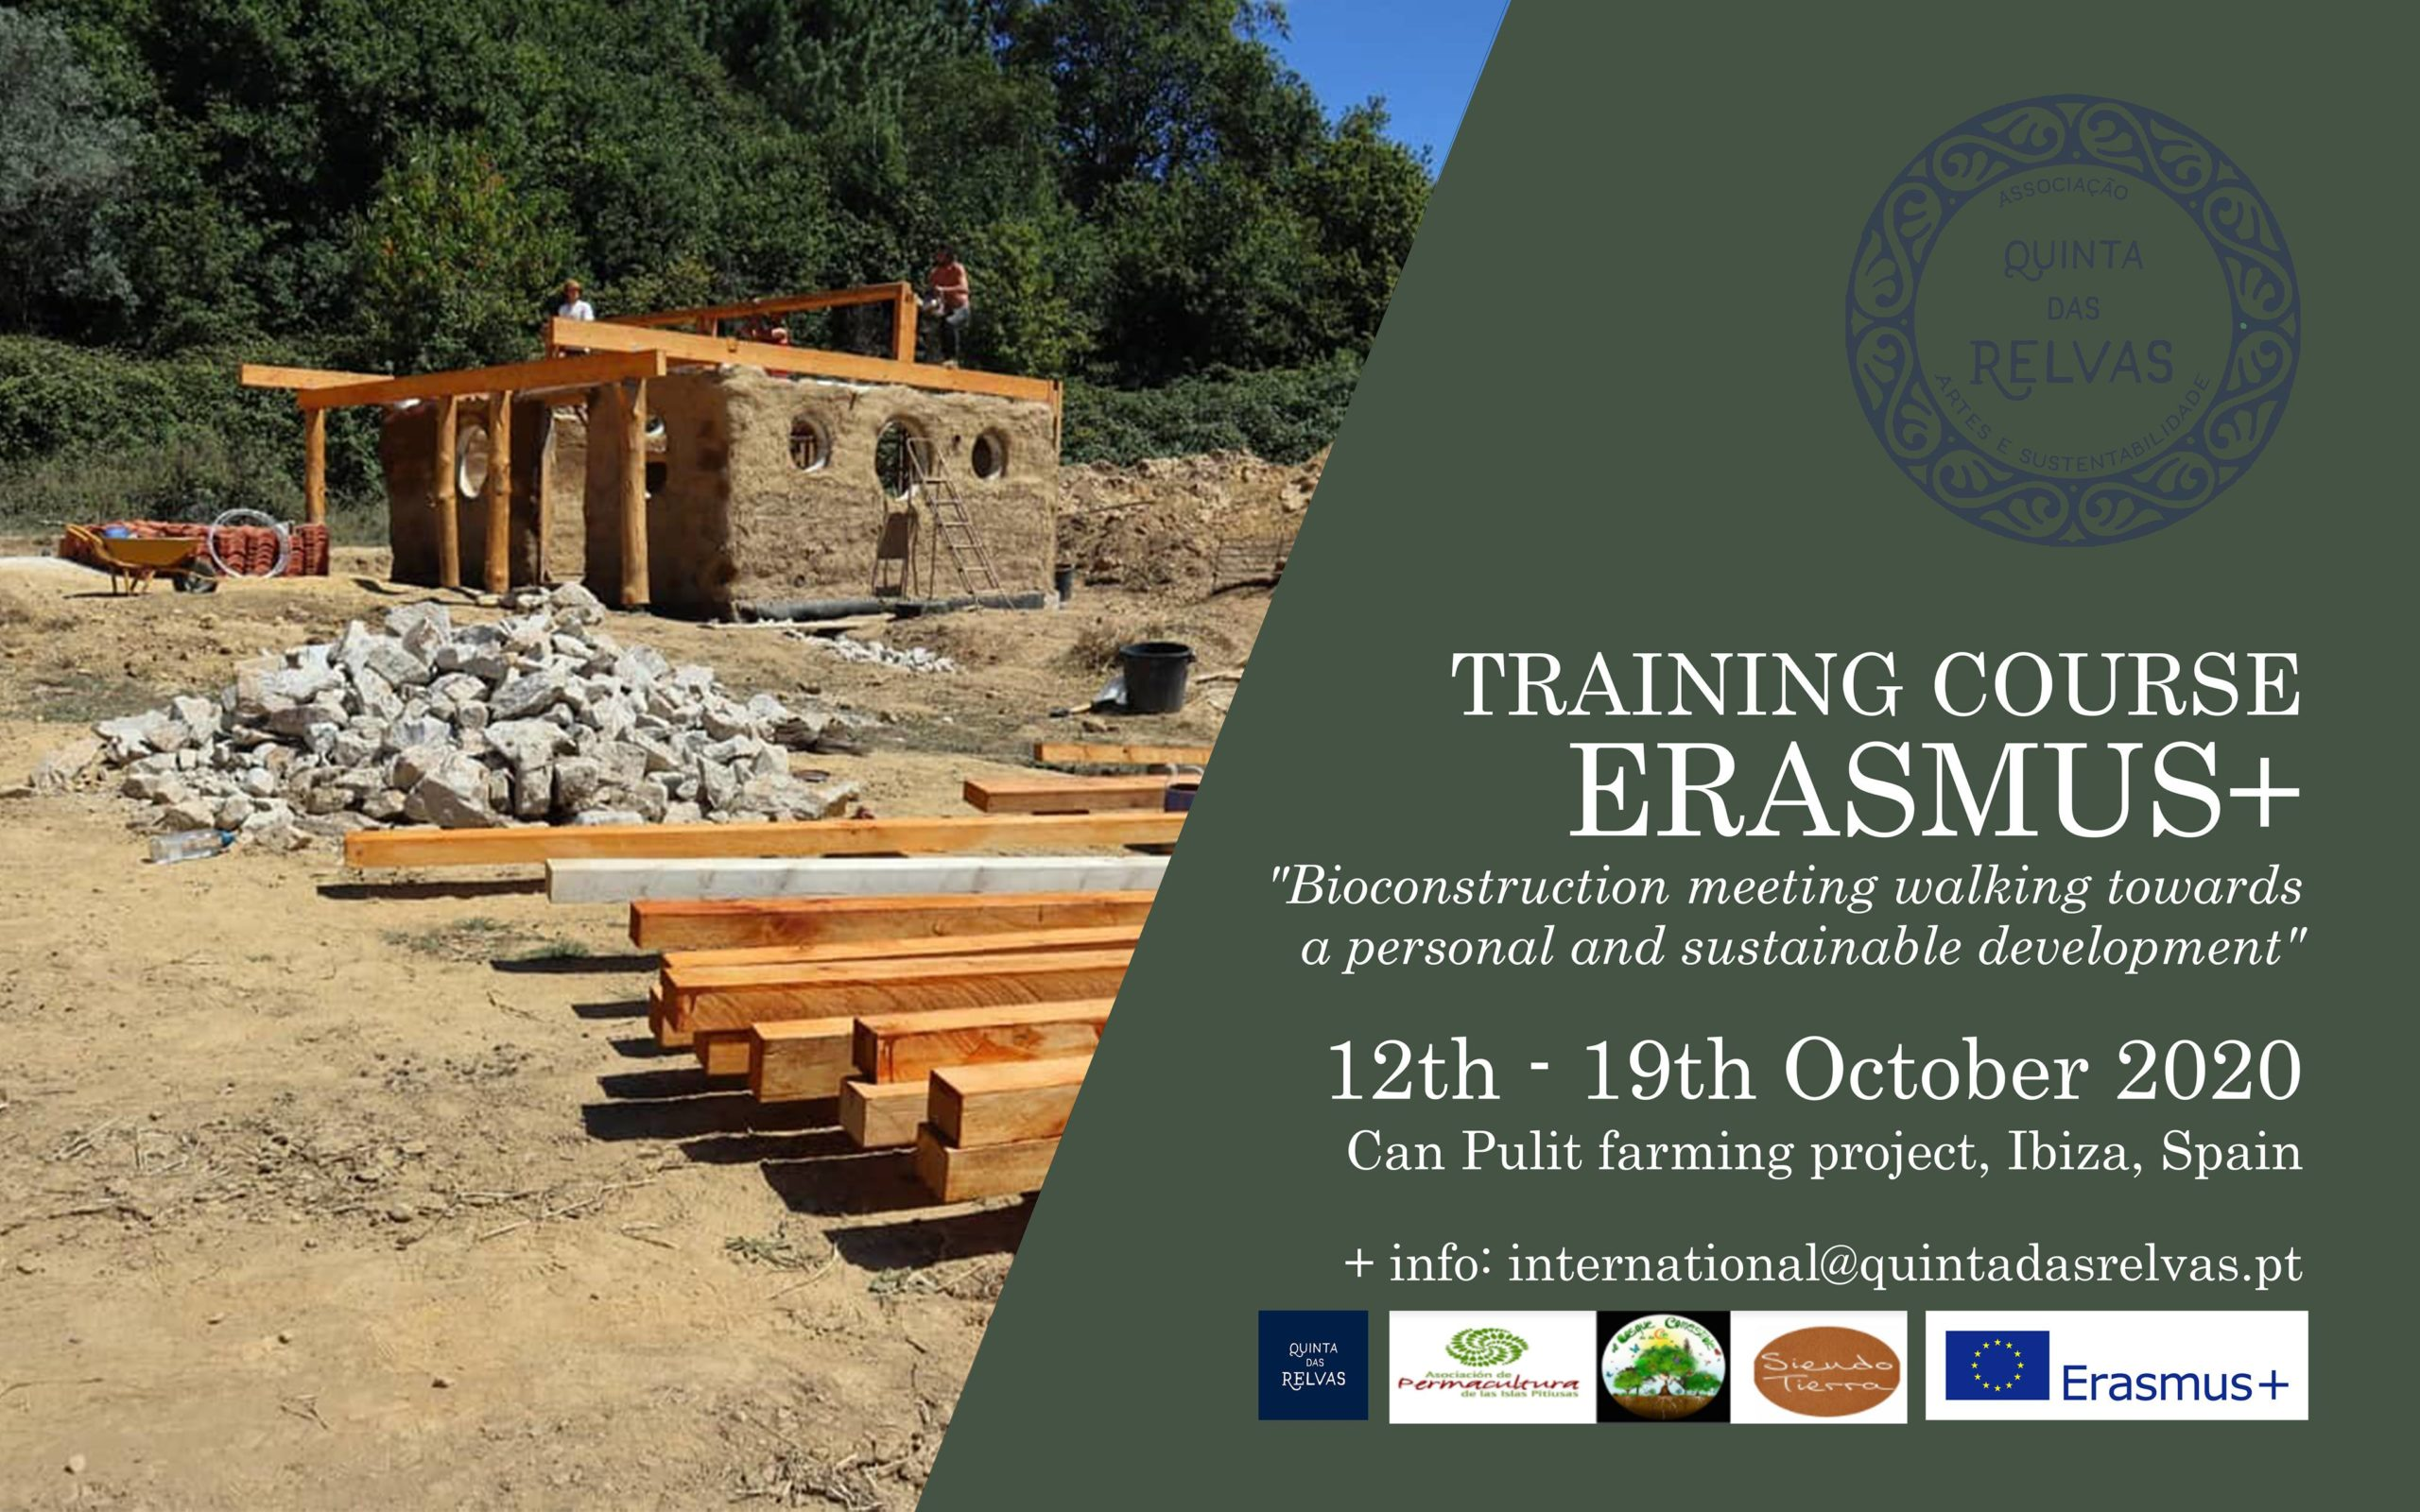 Training Course Erasmus+